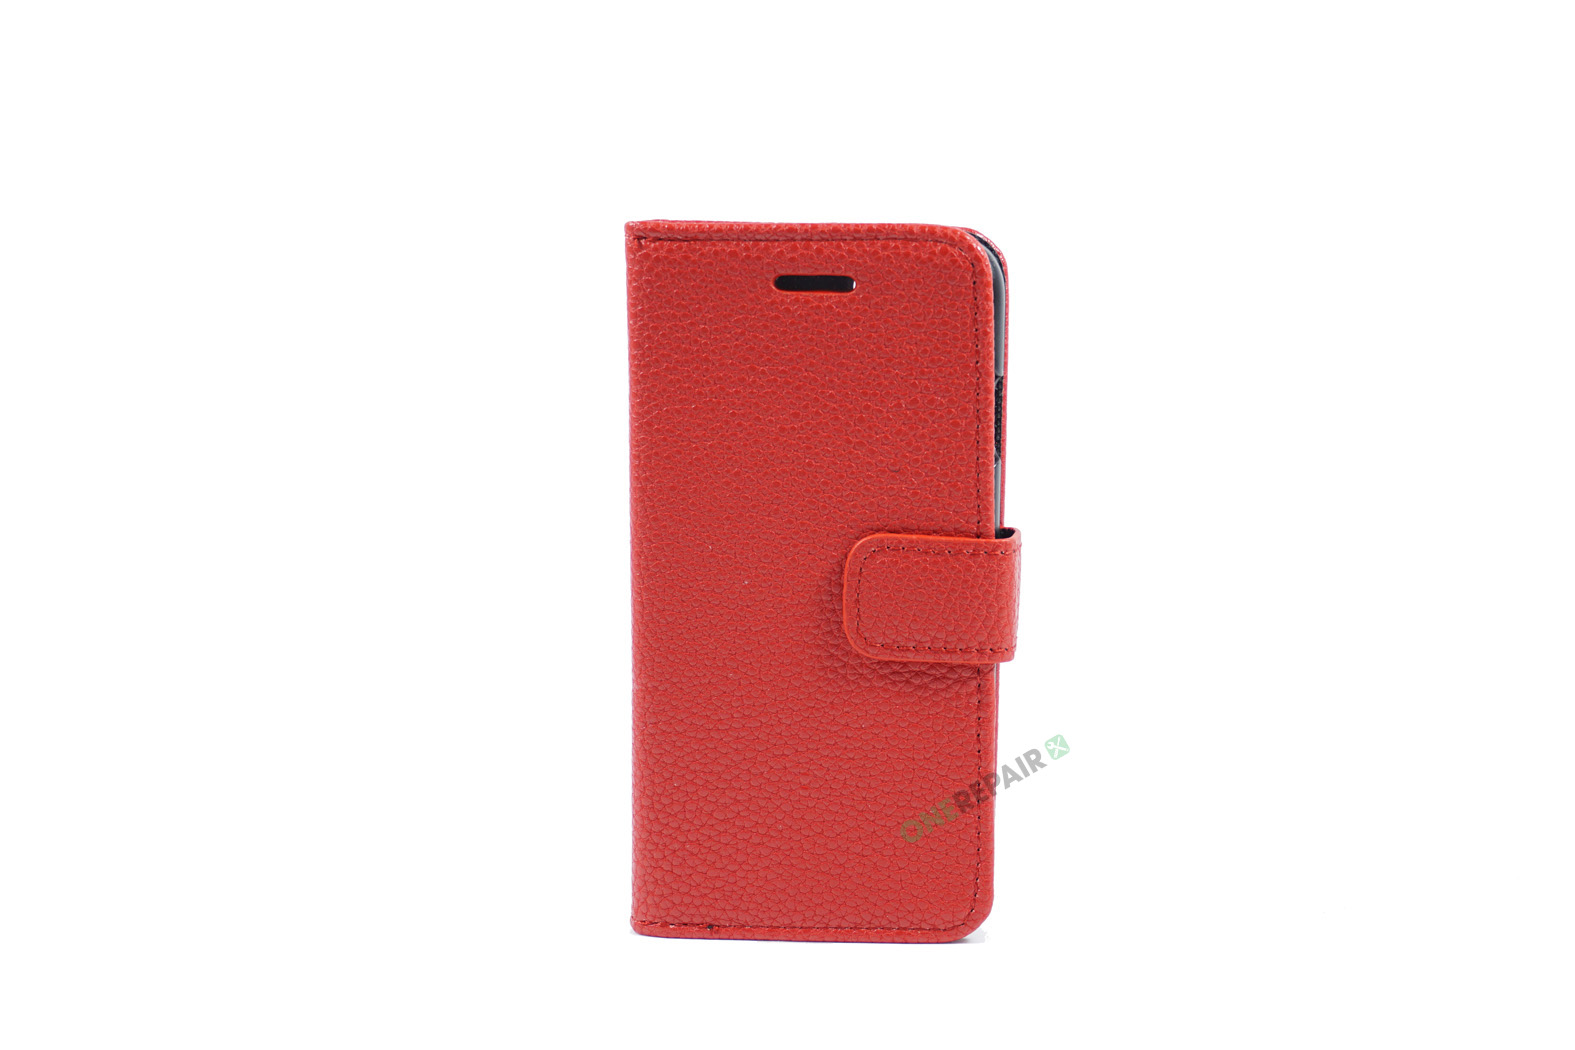 350822_iPhone_7_8_Flipcover_Bubble_Cover_Roed_OneRepair_WM_00001